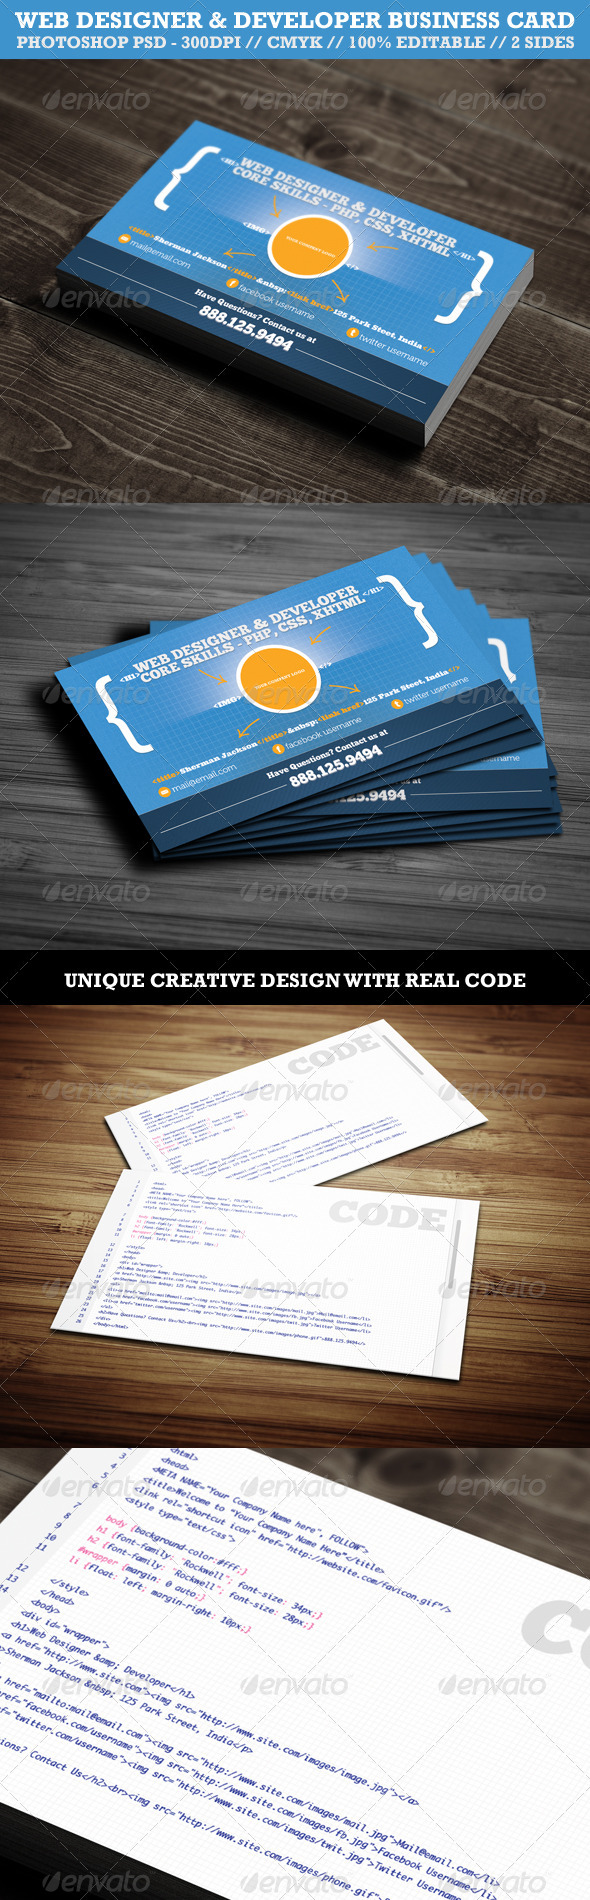 Creative Web Designer/Developer Business Card - Creative Business Cards